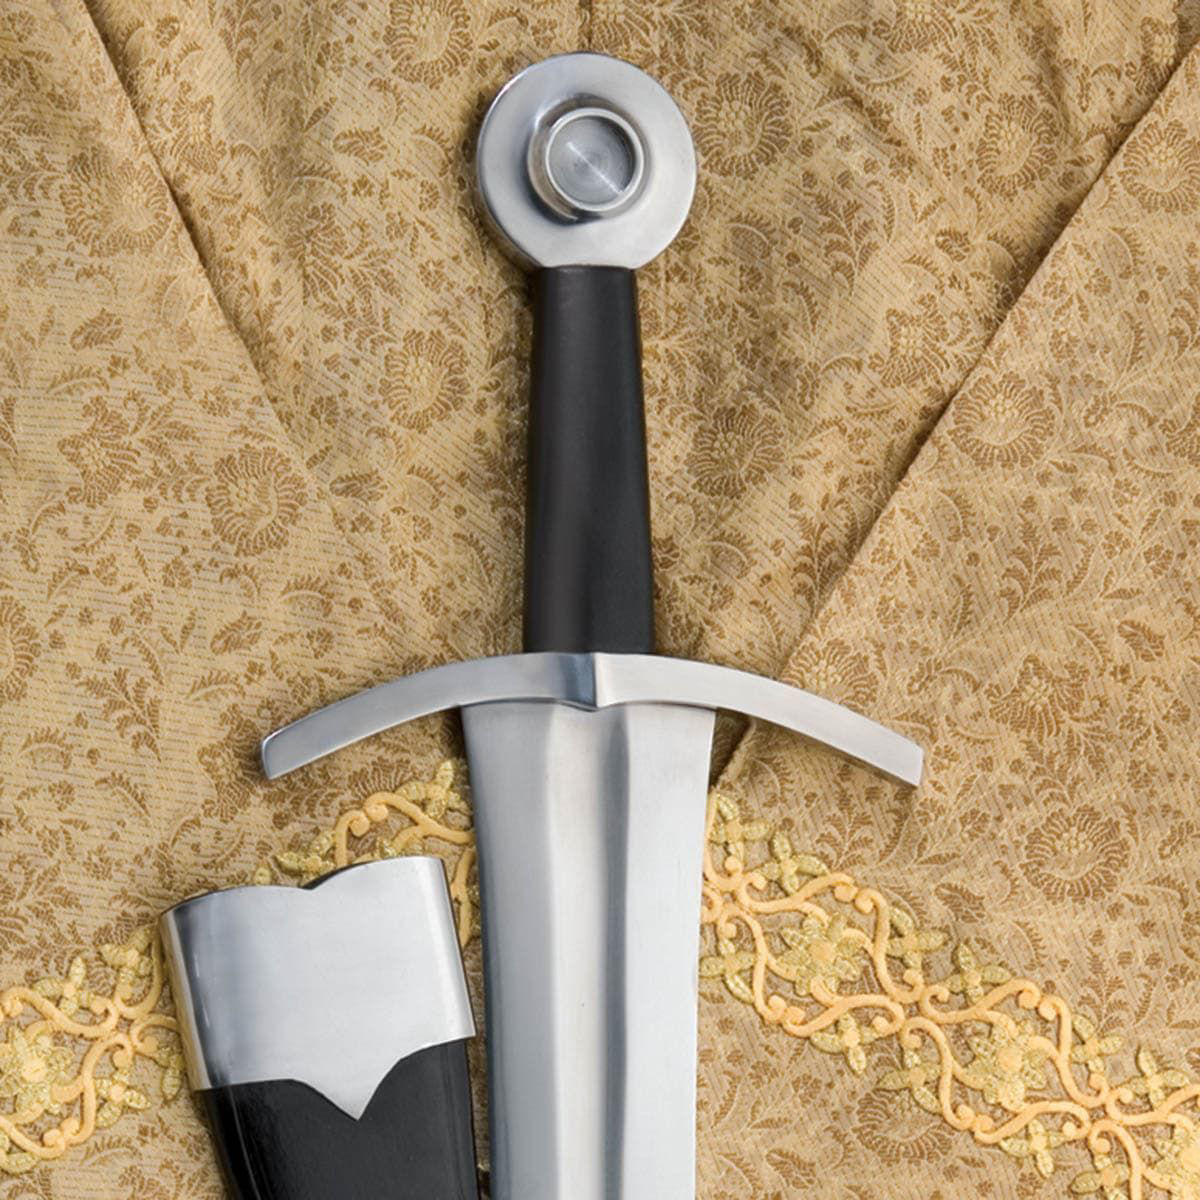 Oakeshott Type XIV Arming Sword by Windlass with wheel pommel and high carbon steel blade